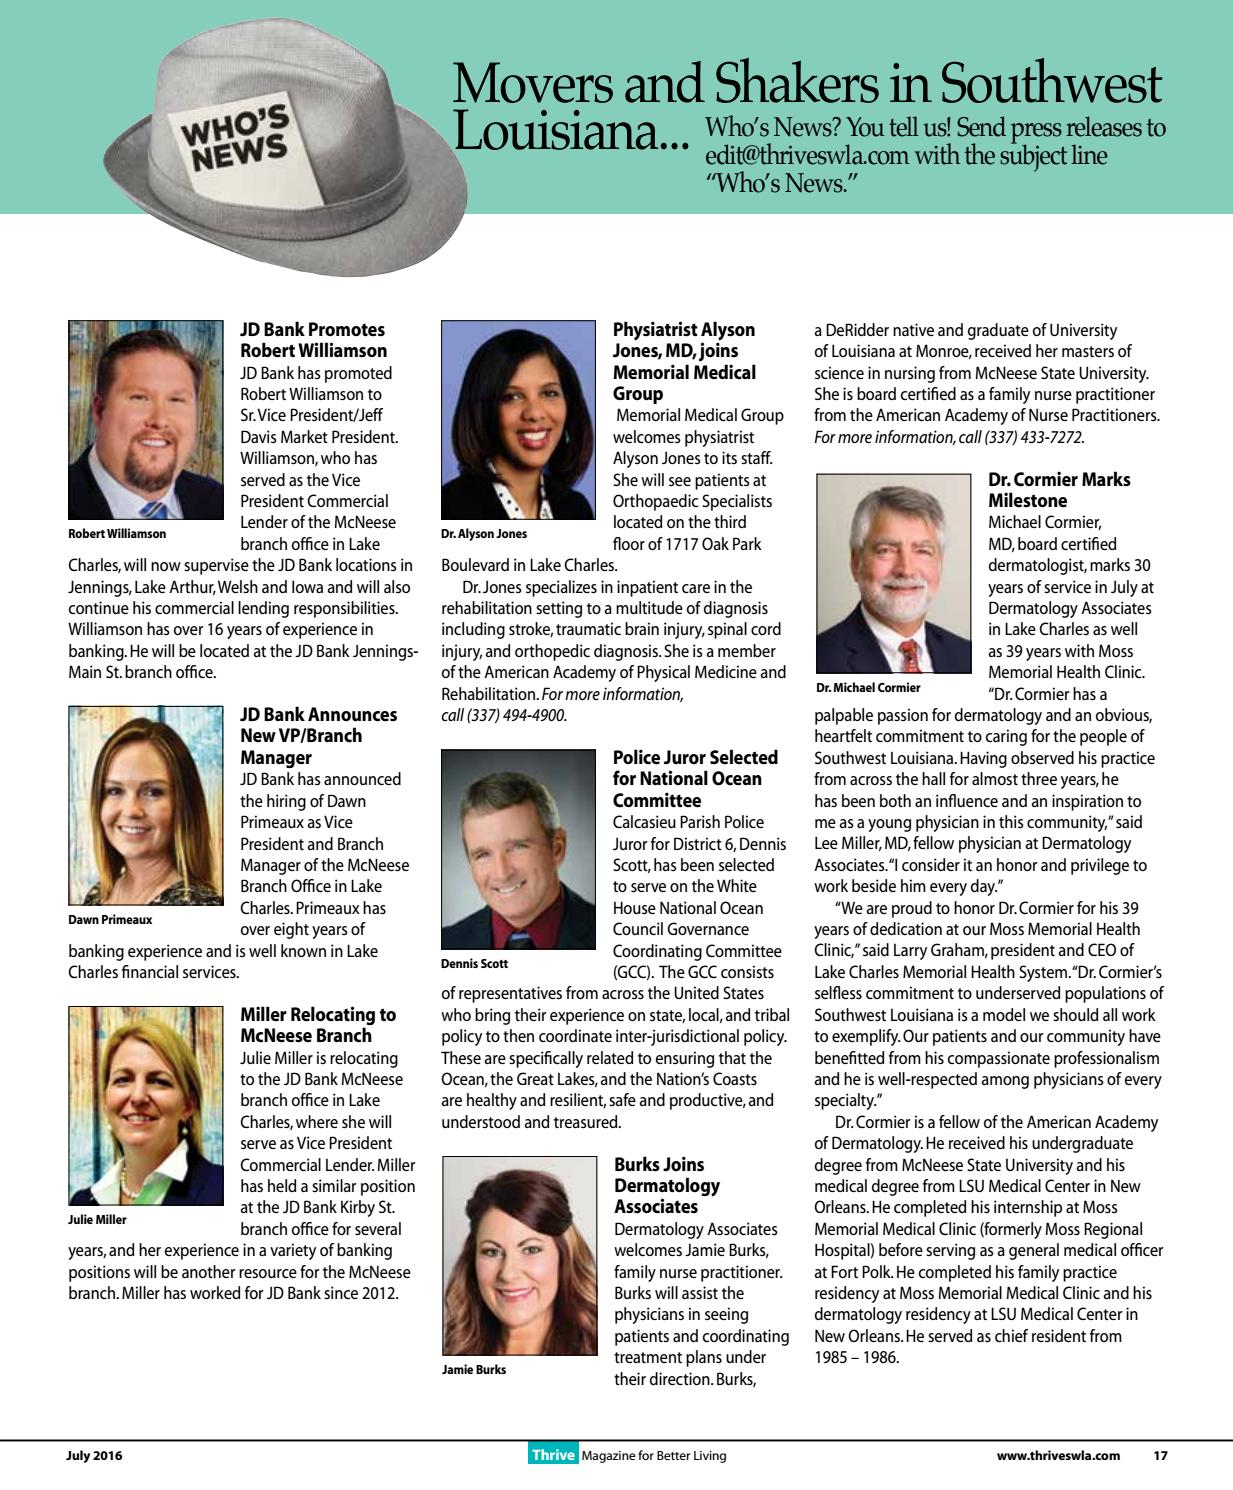 Thrive July 2016 Issue by Thrive Magazine - issuu